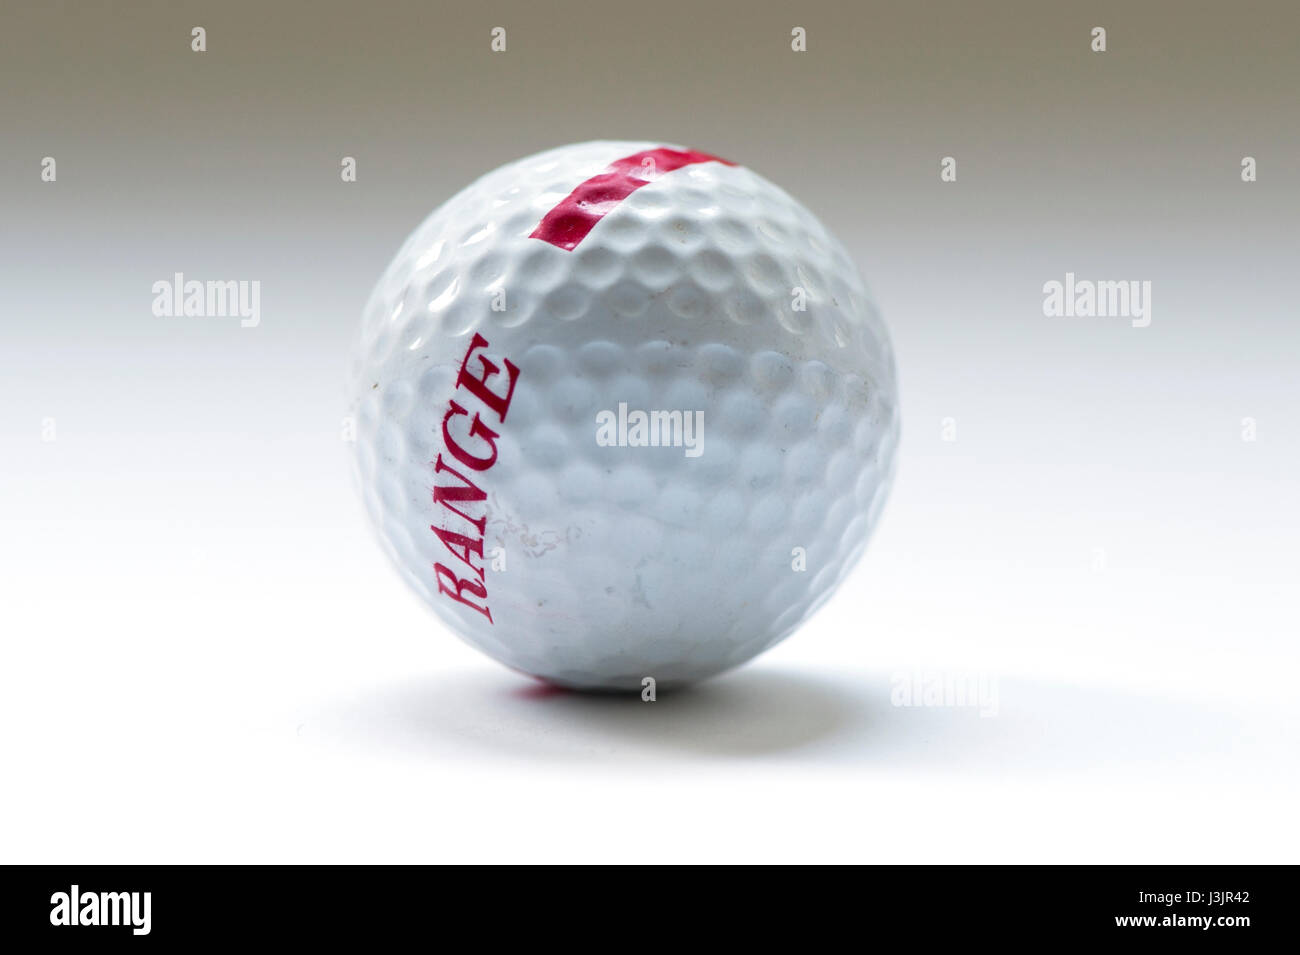 une balle de golf Photo Stock